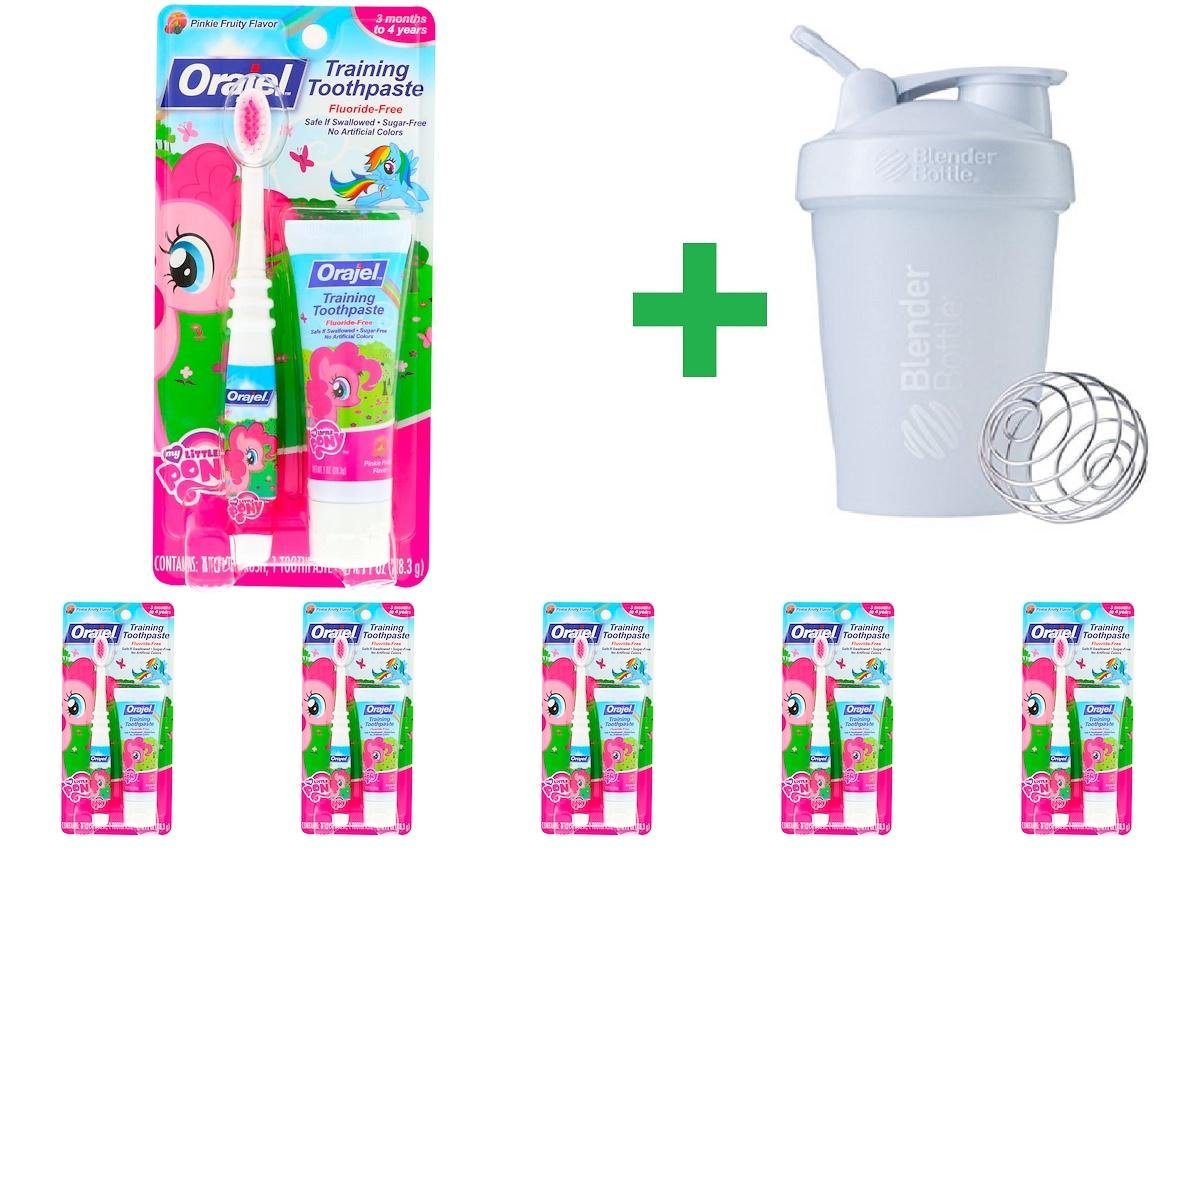 Orajel, My Little Pony Training Toothpaste with Toothbrush, Flouride Free, Pinkie Fruity Flavor, 3 Months to 4 Years, 1 oz (28.3 g)(6 Packs)+ Assorted Sundesa, BlenderBottle, Classic With Loop, 20 oz by OrajelToothbrush